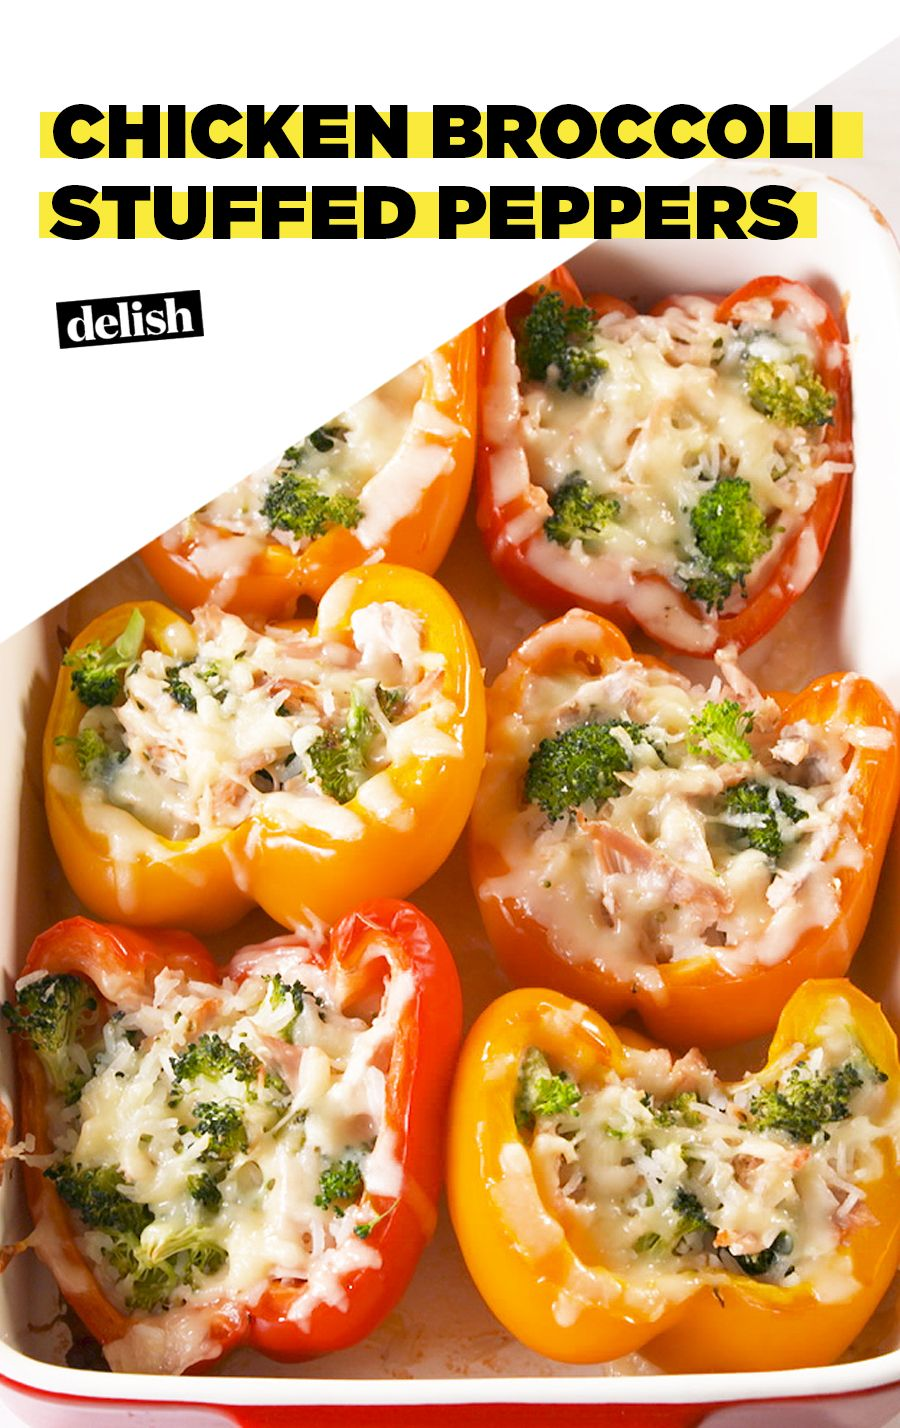 Chicken Broccoli Stuffed Peppers The Perfect Dinner Recipe Stuffed Peppers Peppers Recipes Recipes